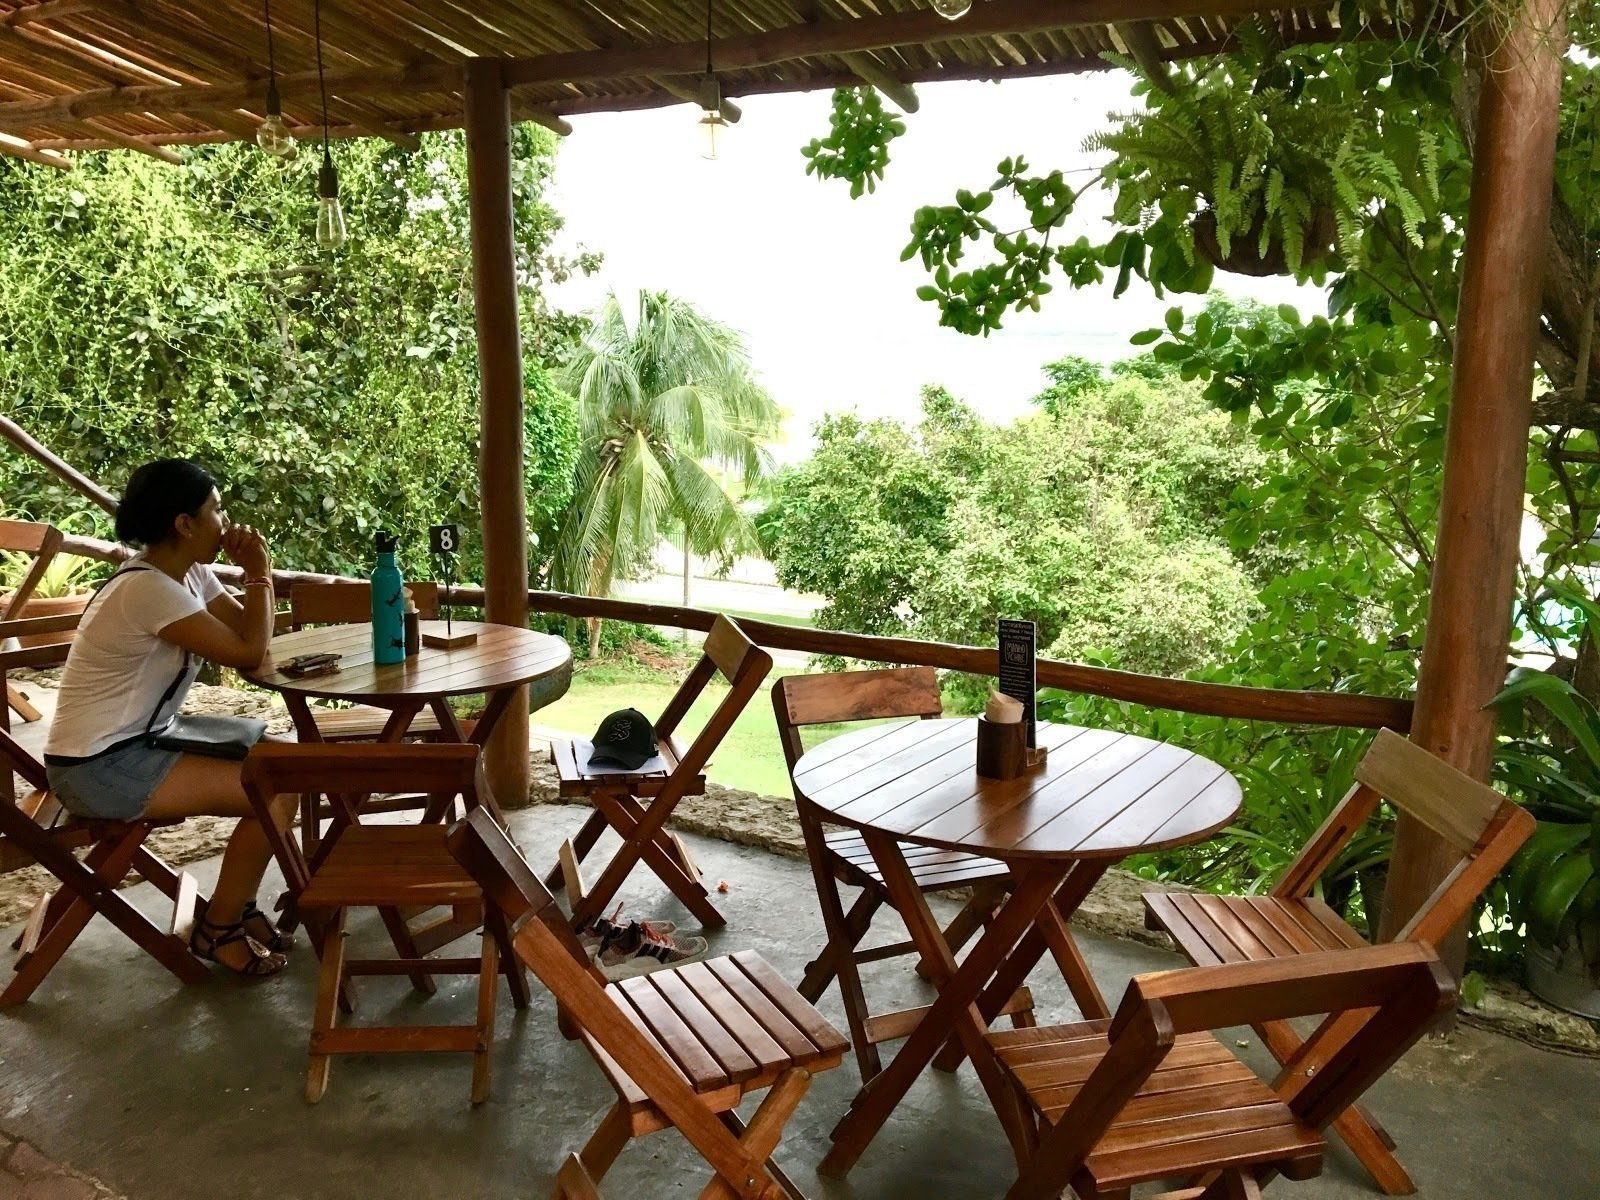 Mango y Chile: A Work-Friendly Place in Bacalar